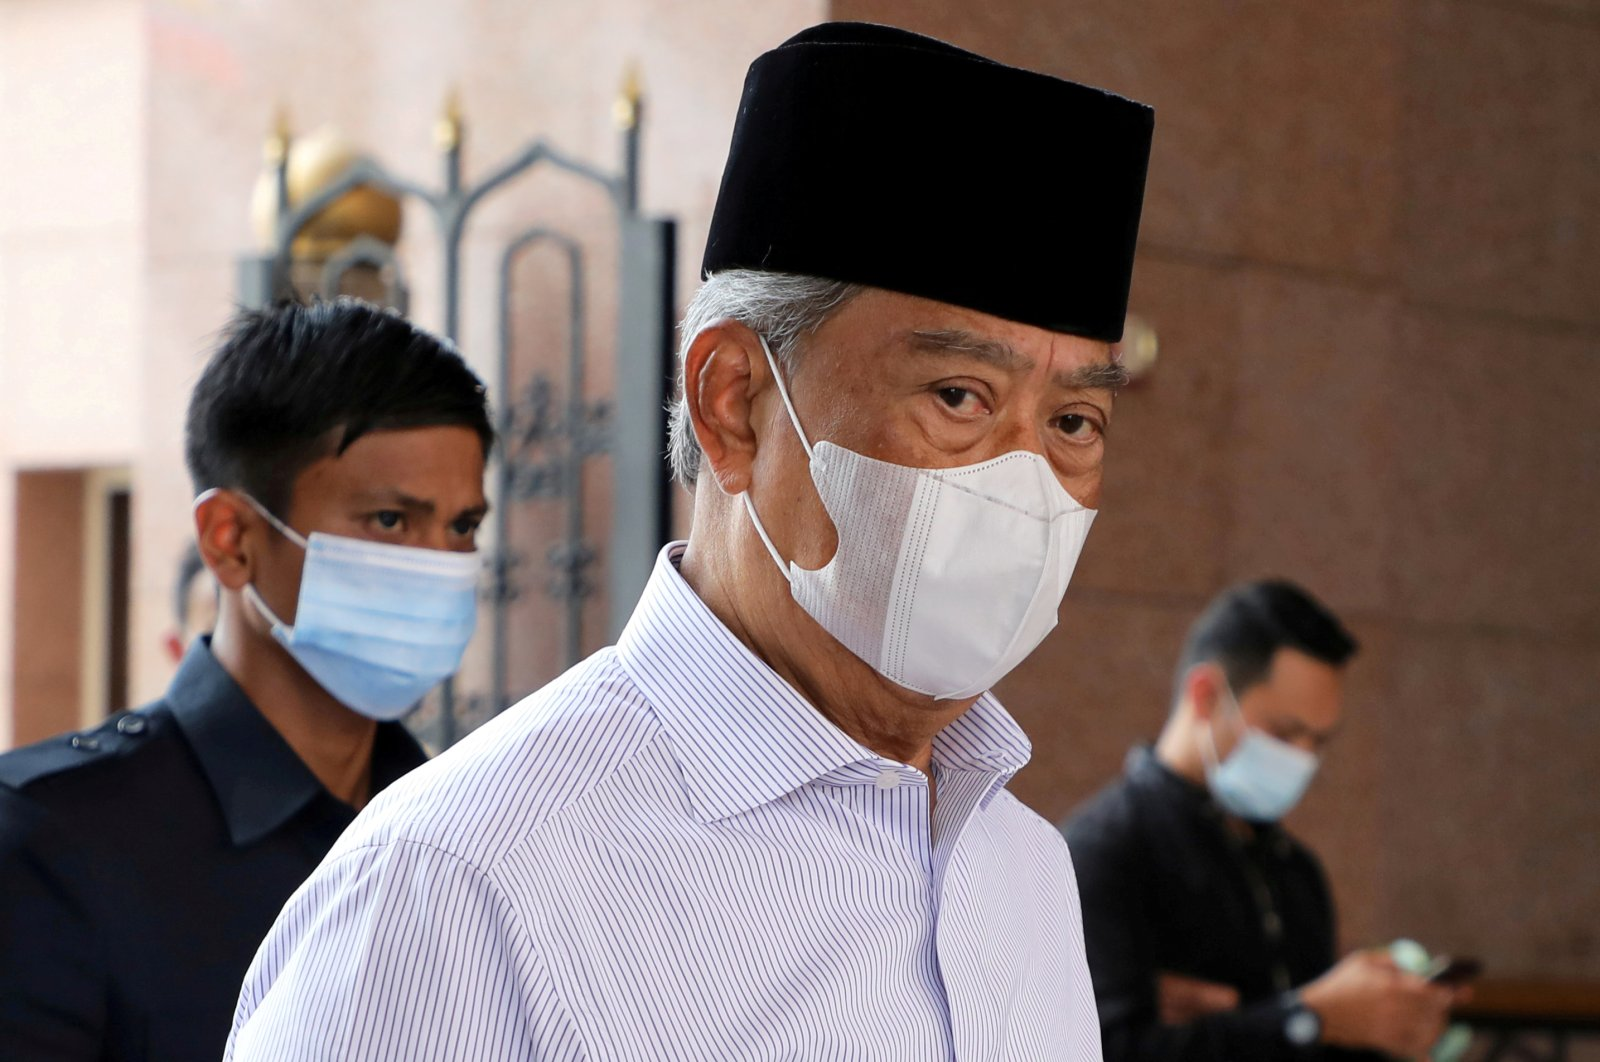 Malaysia's Prime Minister Muhyiddin Yassin wearing a protective mask arrives at a mosque for prayers, amid the coronavirus outbreak in Putrajaya, Malaysia, Aug. 28, 2020. (Reuters Photo)